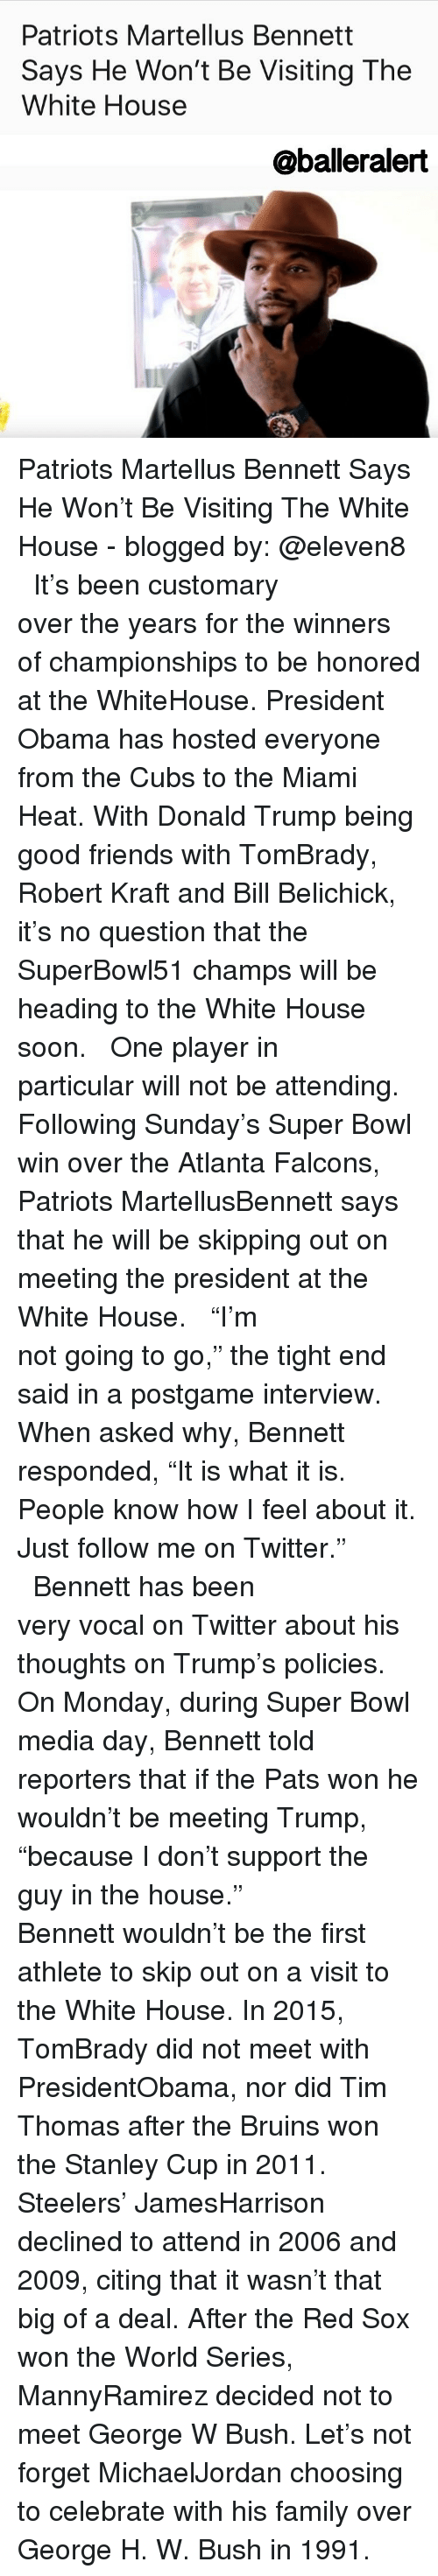 """Atlanta Falcon: Patriots Martellus Bennett  Says He Won't Be Visiting The  White House  aballeralert Patriots Martellus Bennett Says He Won't Be Visiting The White House - blogged by: @eleven8 ⠀⠀⠀⠀⠀⠀⠀⠀⠀ ⠀⠀⠀⠀⠀⠀⠀⠀⠀ It's been customary over the years for the winners of championships to be honored at the WhiteHouse. President Obama has hosted everyone from the Cubs to the Miami Heat. With Donald Trump being good friends with TomBrady, Robert Kraft and Bill Belichick, it's no question that the SuperBowl51 champs will be heading to the White House soon. ⠀⠀⠀⠀⠀⠀⠀⠀⠀ ⠀⠀⠀⠀⠀⠀⠀⠀⠀ One player in particular will not be attending. Following Sunday's Super Bowl win over the Atlanta Falcons, Patriots MartellusBennett says that he will be skipping out on meeting the president at the White House. ⠀⠀⠀⠀⠀⠀⠀⠀⠀ ⠀⠀⠀⠀⠀⠀⠀⠀⠀ """"I'm not going to go,"""" the tight end said in a postgame interview. When asked why, Bennett responded, """"It is what it is. People know how I feel about it. Just follow me on Twitter."""" ⠀⠀⠀⠀⠀⠀⠀⠀⠀ ⠀⠀⠀⠀⠀⠀⠀⠀⠀ Bennett has been very vocal on Twitter about his thoughts on Trump's policies. On Monday, during Super Bowl media day, Bennett told reporters that if the Pats won he wouldn't be meeting Trump, """"because I don't support the guy in the house."""" ⠀⠀⠀⠀⠀⠀⠀⠀⠀ ⠀⠀⠀⠀⠀⠀⠀⠀⠀ Bennett wouldn't be the first athlete to skip out on a visit to the White House. In 2015, TomBrady did not meet with PresidentObama, nor did Tim Thomas after the Bruins won the Stanley Cup in 2011. Steelers' JamesHarrison declined to attend in 2006 and 2009, citing that it wasn't that big of a deal. After the Red Sox won the World Series, MannyRamirez decided not to meet George W Bush. Let's not forget MichaelJordan choosing to celebrate with his family over George H. W. Bush in 1991."""